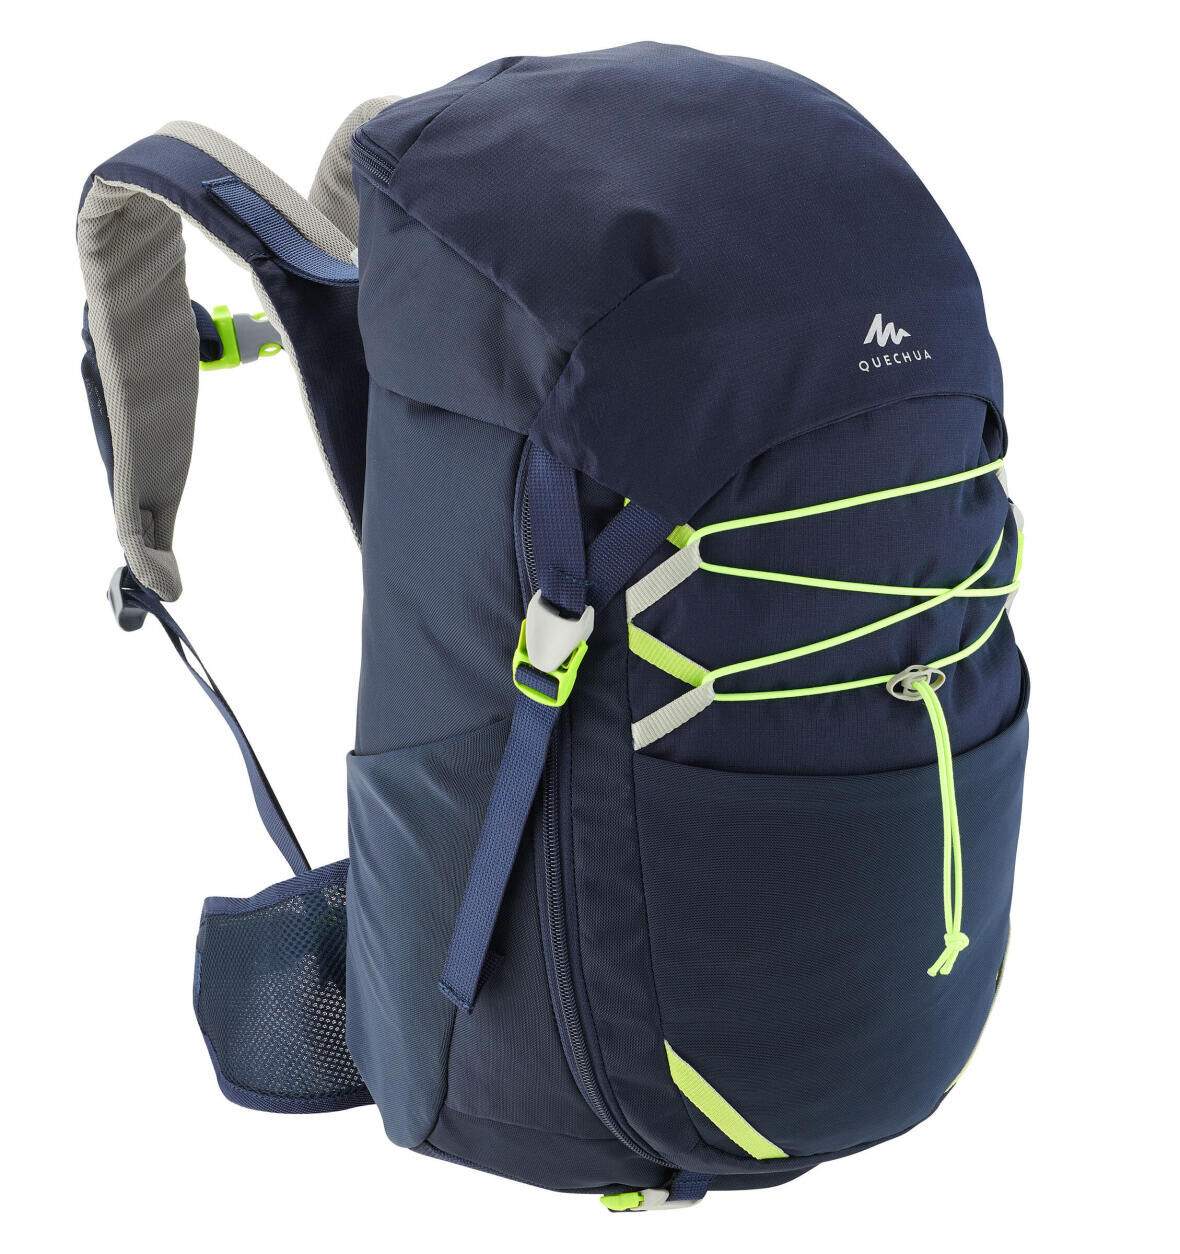 WHAT TO TAKE IN YOUR BACKPACK WHEN GOING HIKING WITH YOUR PRE-TEEN?